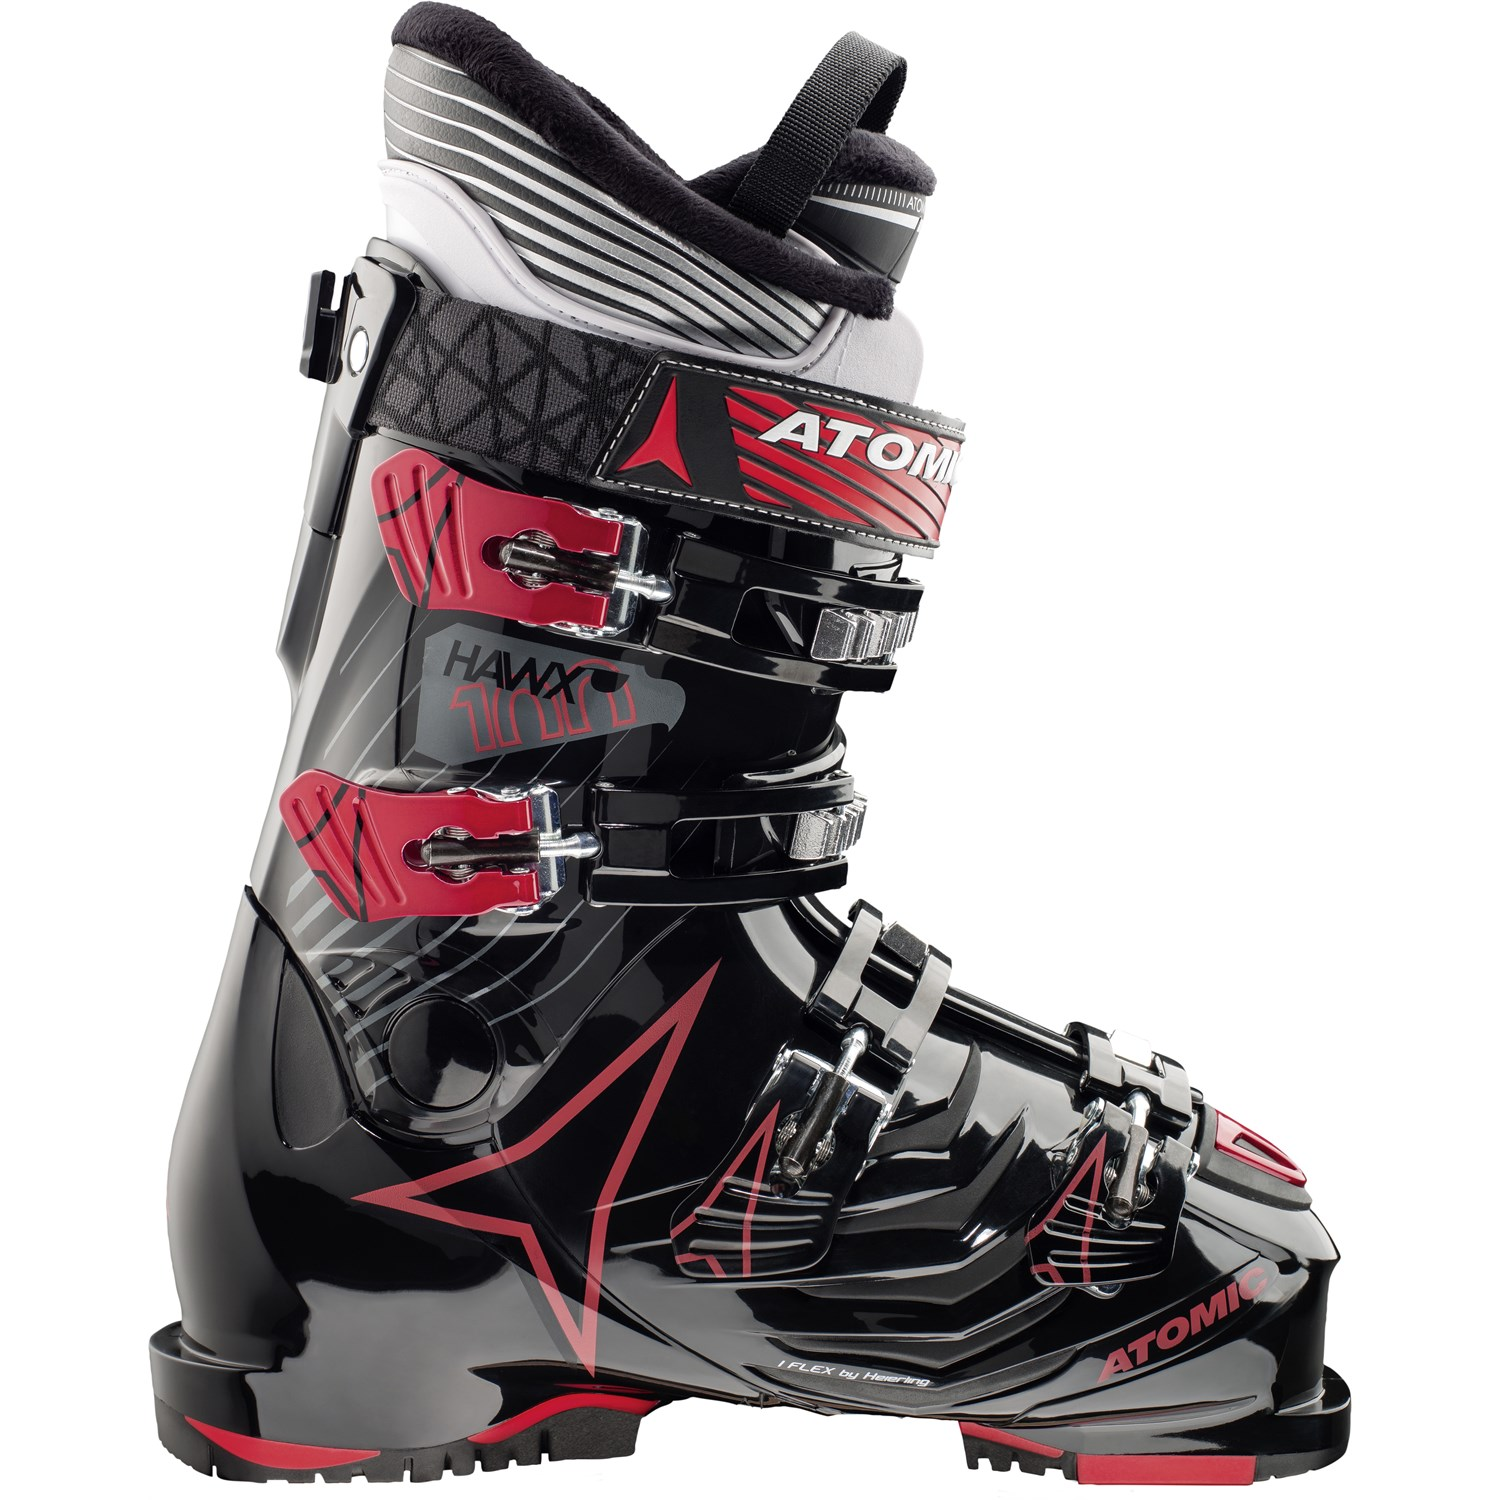 Choosing your Ski and Snowboard Boot 23fdd181a